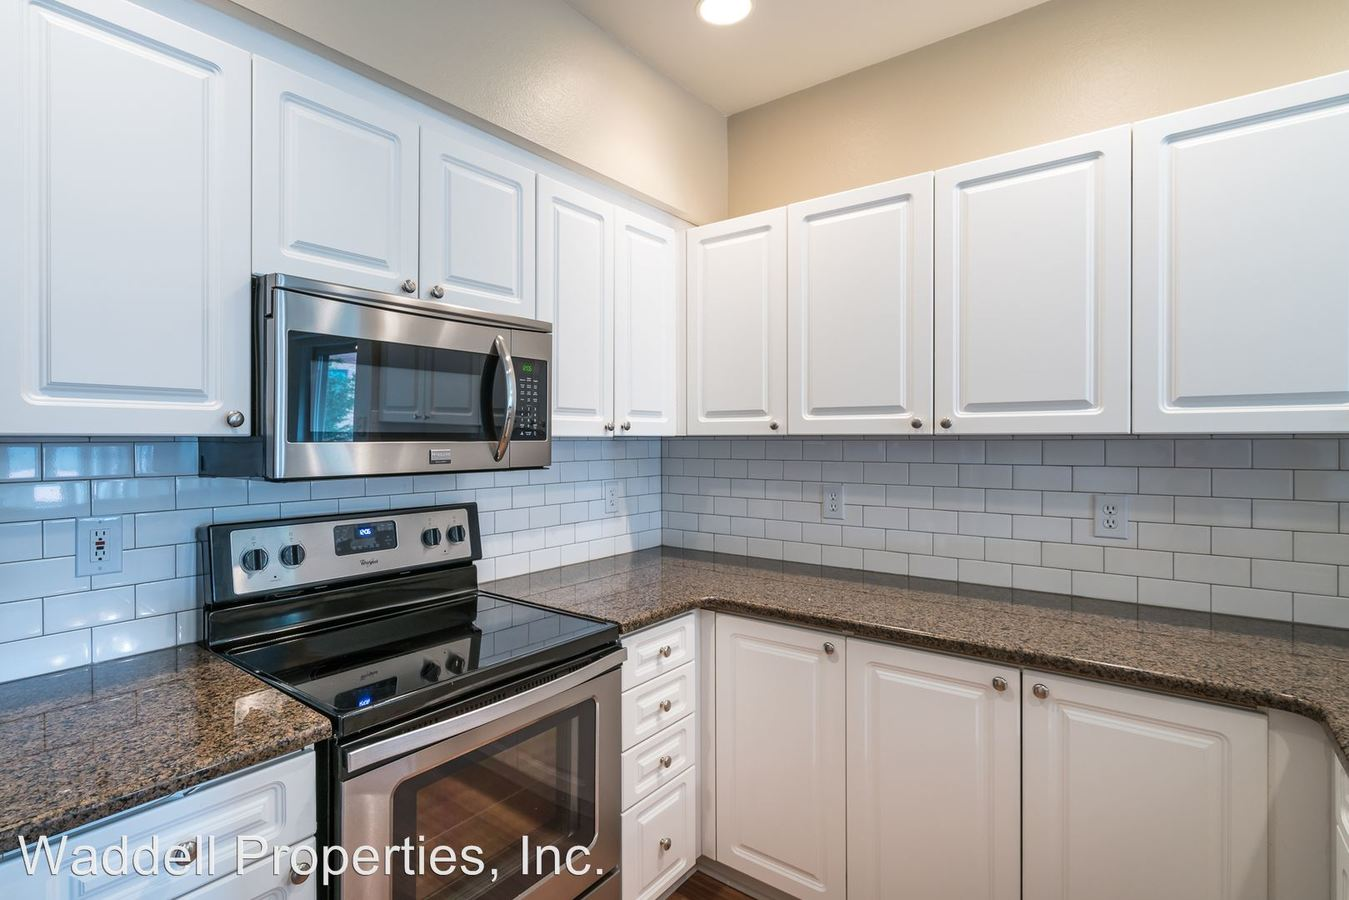 2 Bedrooms 2 Bathrooms Apartment for rent at 530 2nd Ave in Kirkland, WA